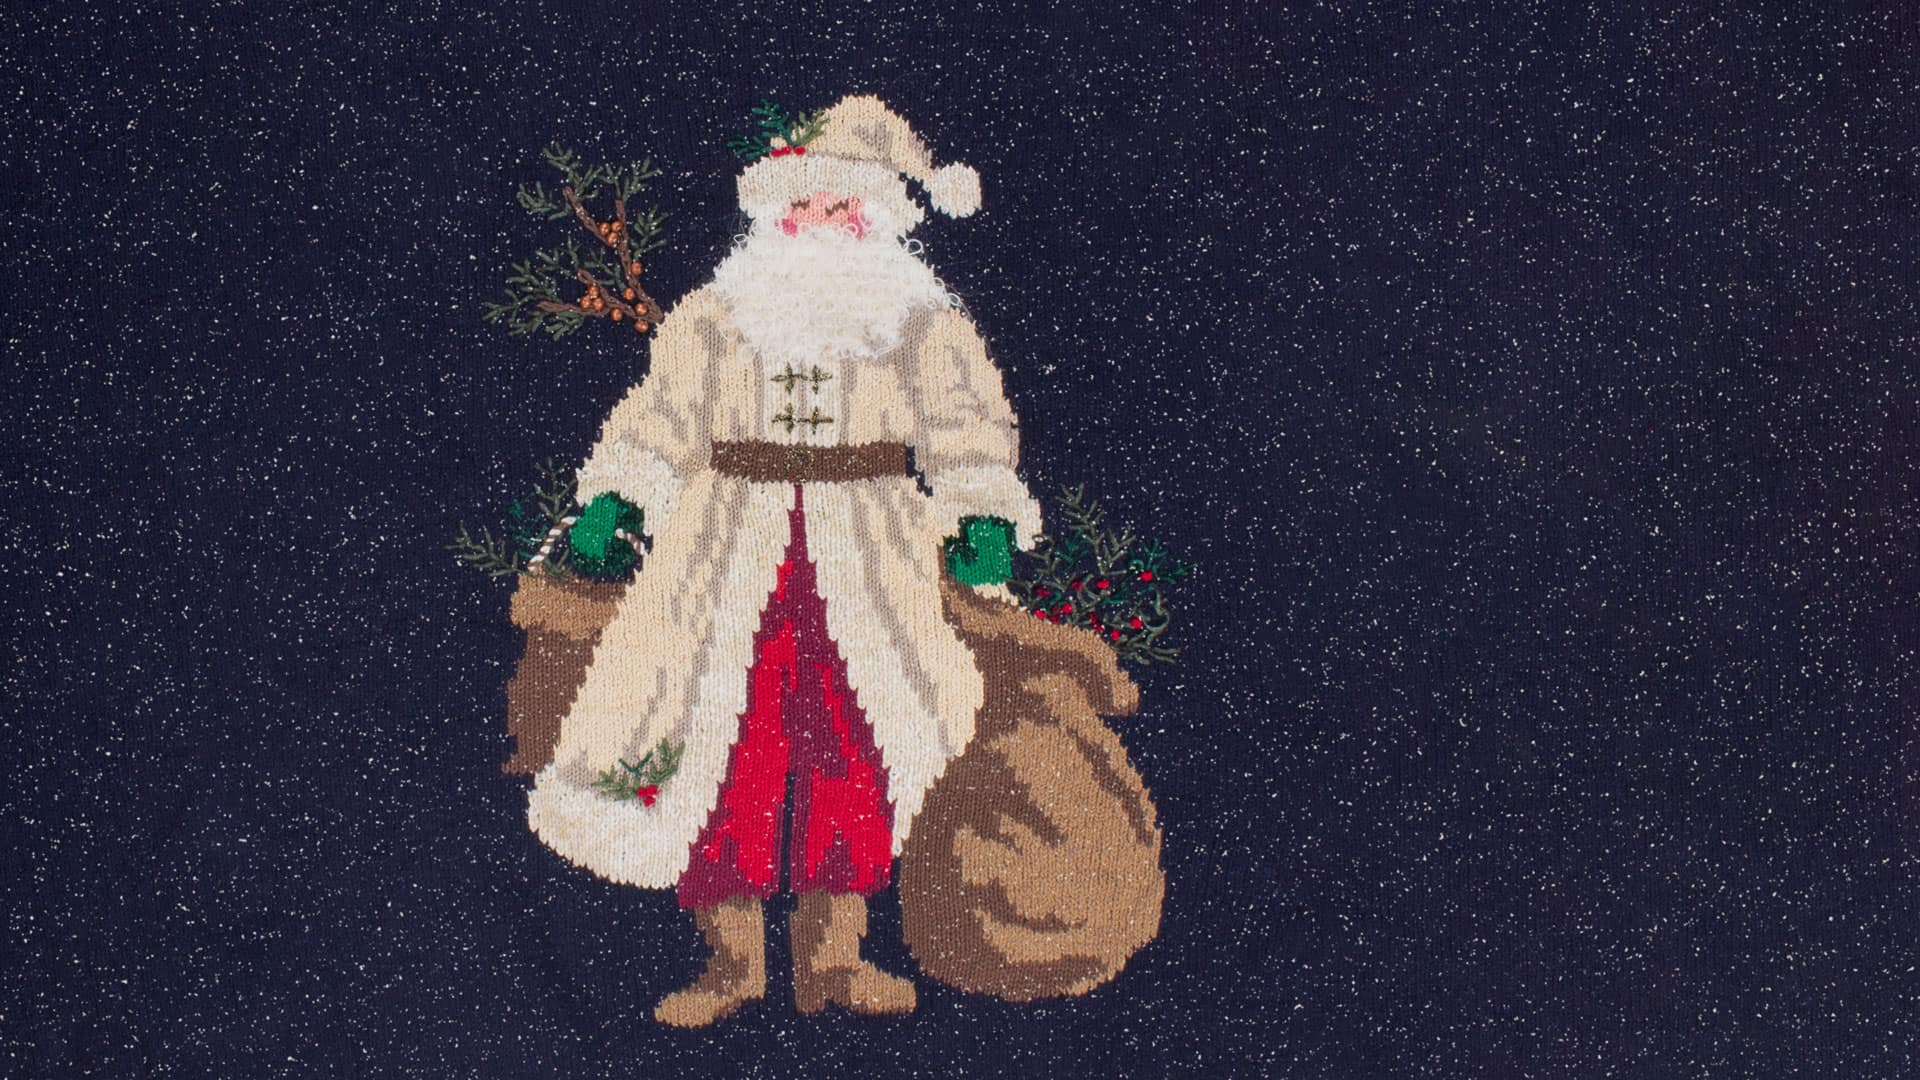 Ugly Christmas sweater featuring a Santa Claus figure carrying bags of wood with a snowy background